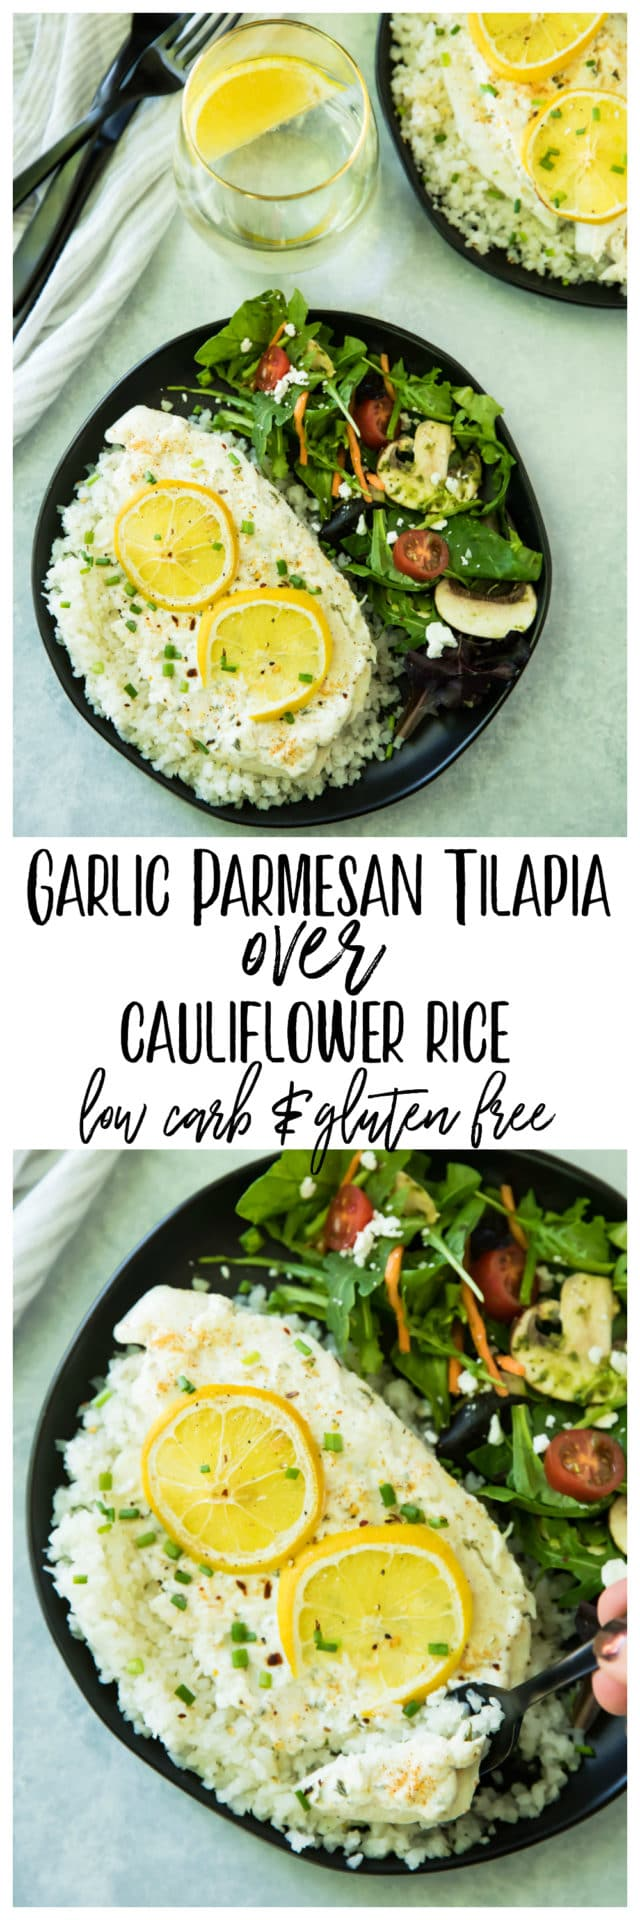 Garlic Parmesan Tilapia Over Cauliflower Riceis ready in less than 20 minutes! The tilapia cooks up light and flakey, and pairs wonderfully with cauliflower rice. It's one of my favorite ways to enjoy fish, and is so good, that even non-seafood lovers will be won over by this dish!